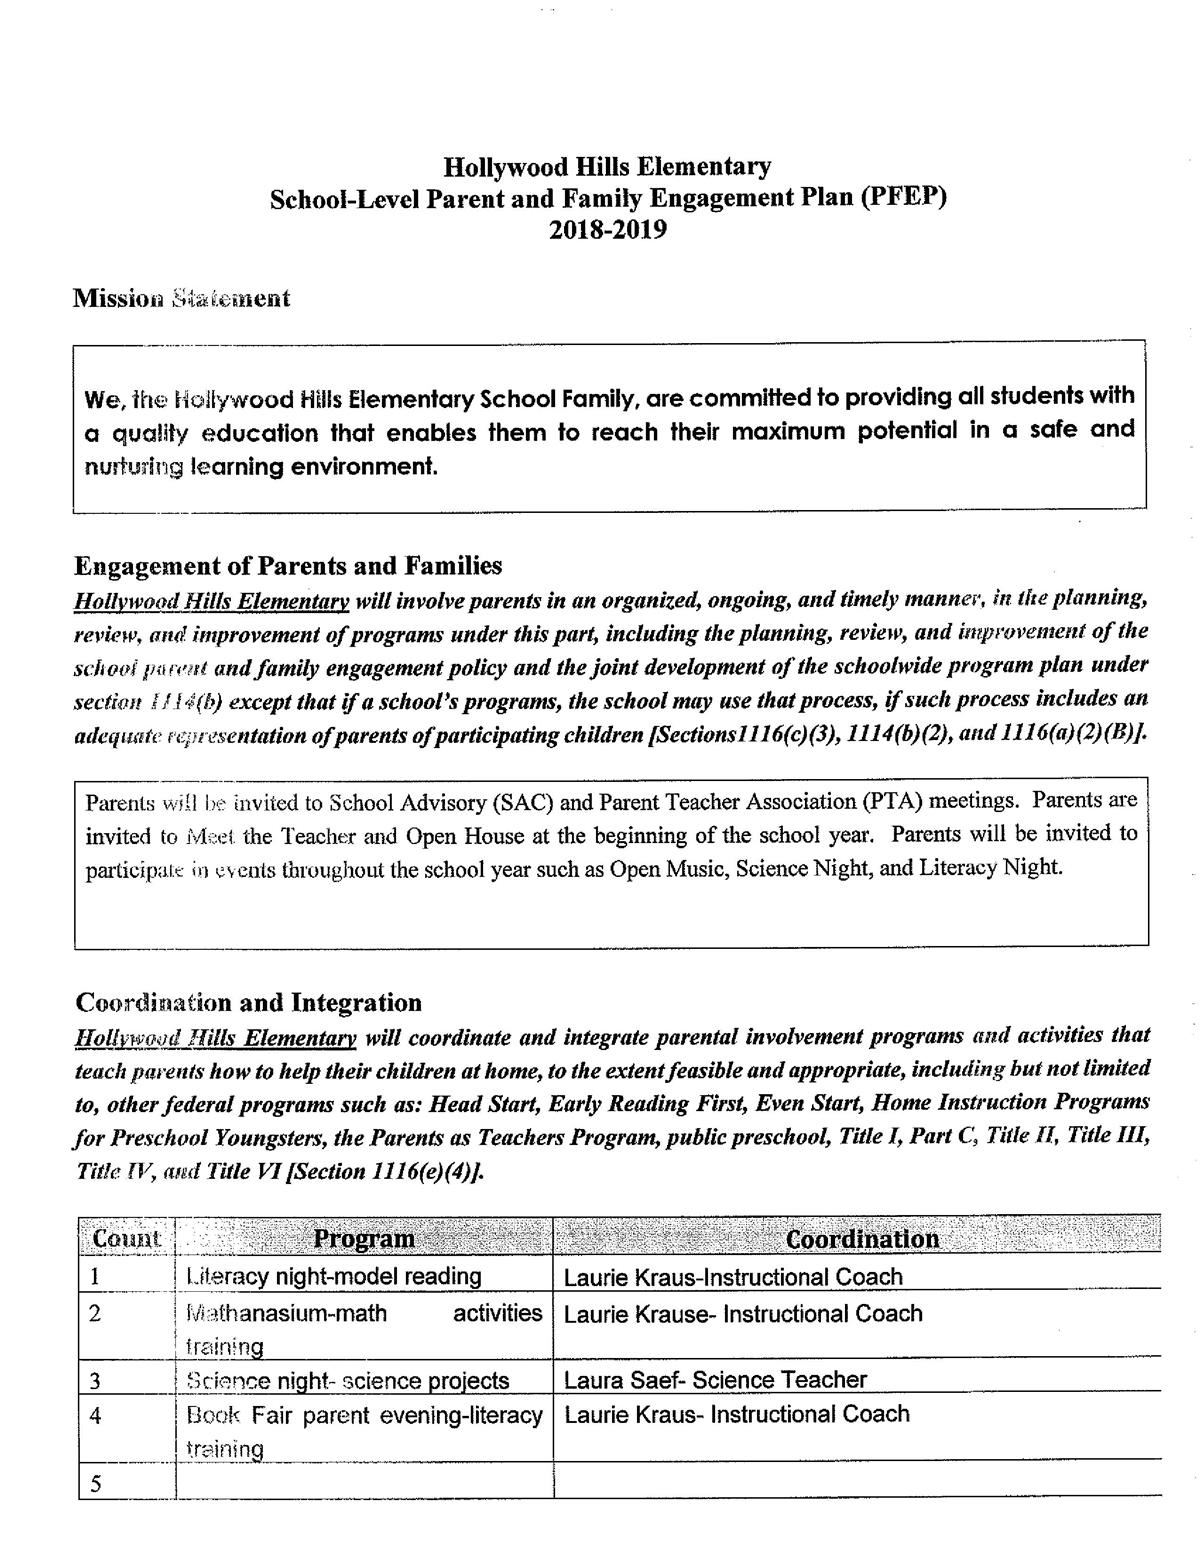 School-Level Parent and Family Engagement PLan (PFEP)